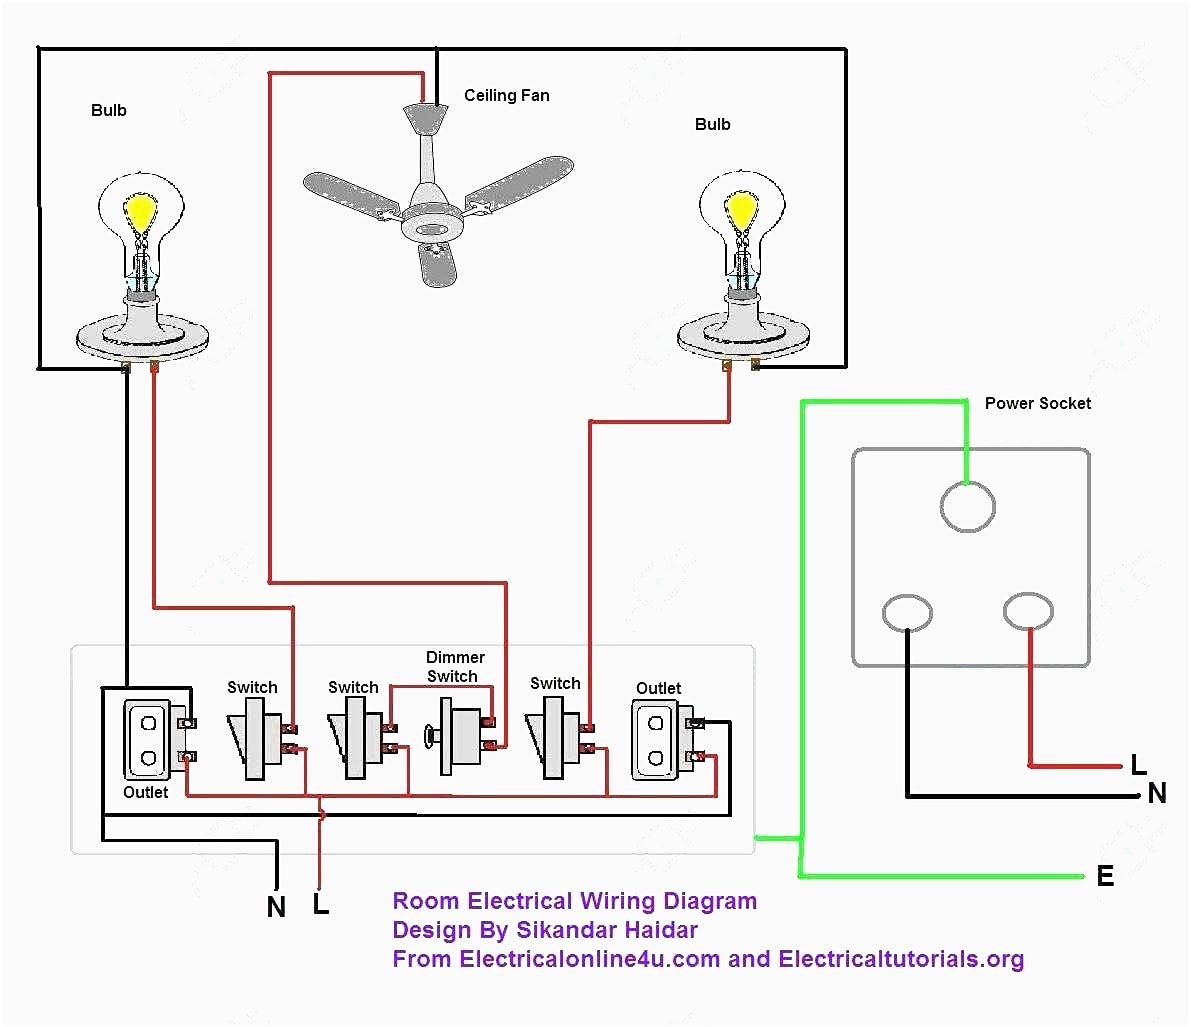 hight resolution of ac bathroom wiring diagram wiring diagram log ac bathroom wiring diagram